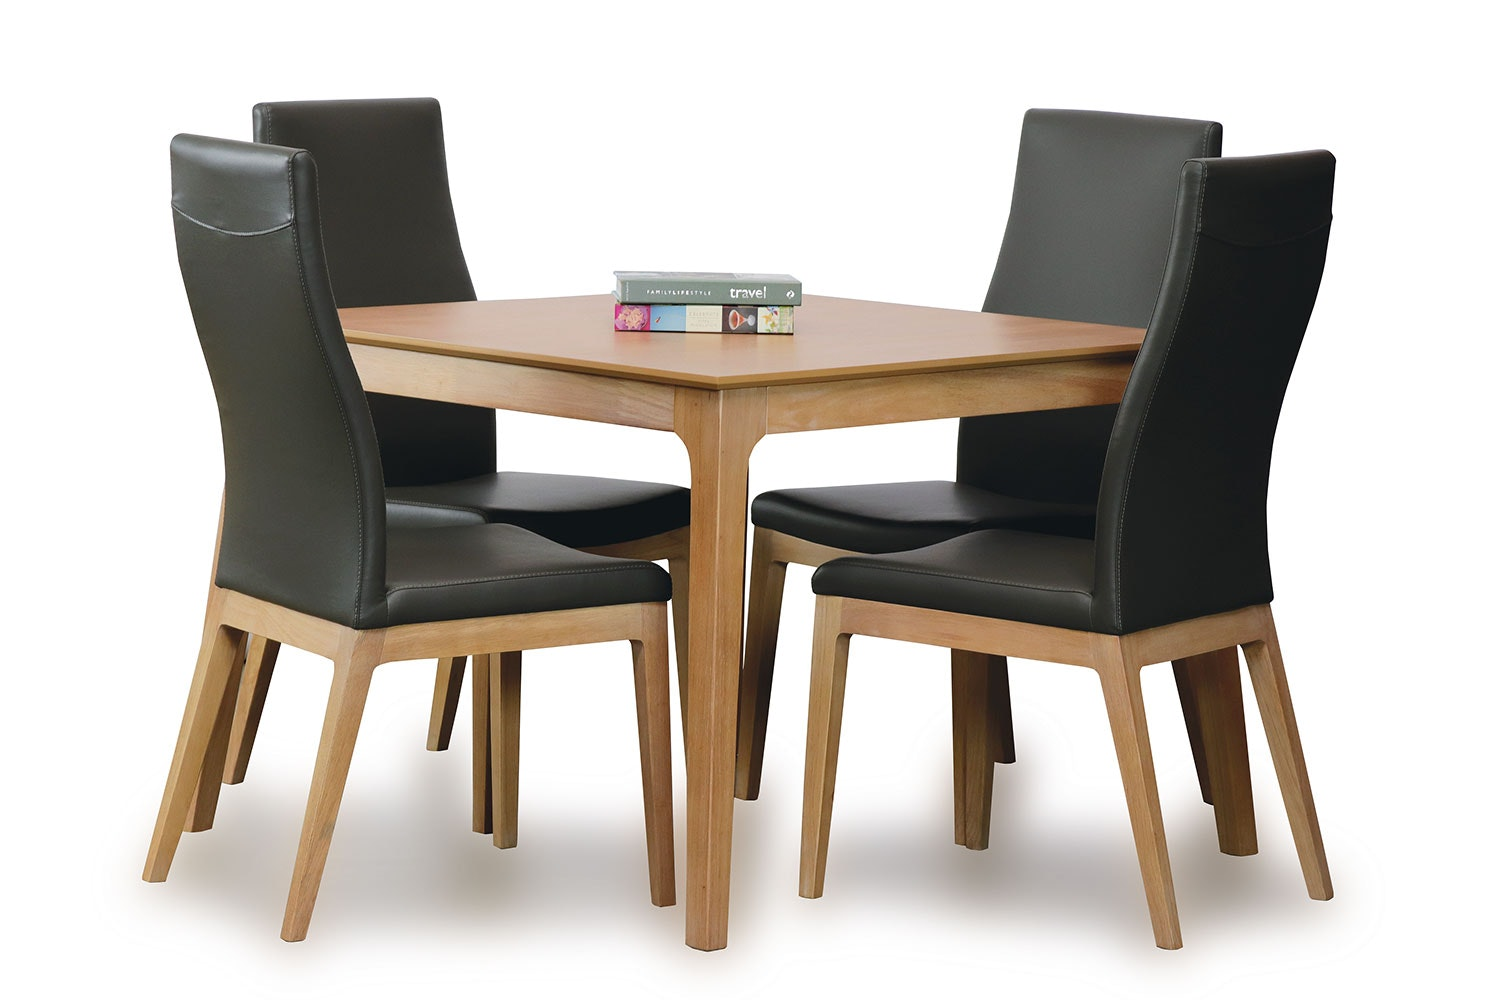 Stockholm 5 Piece Dining Suite by Paulack Furniture